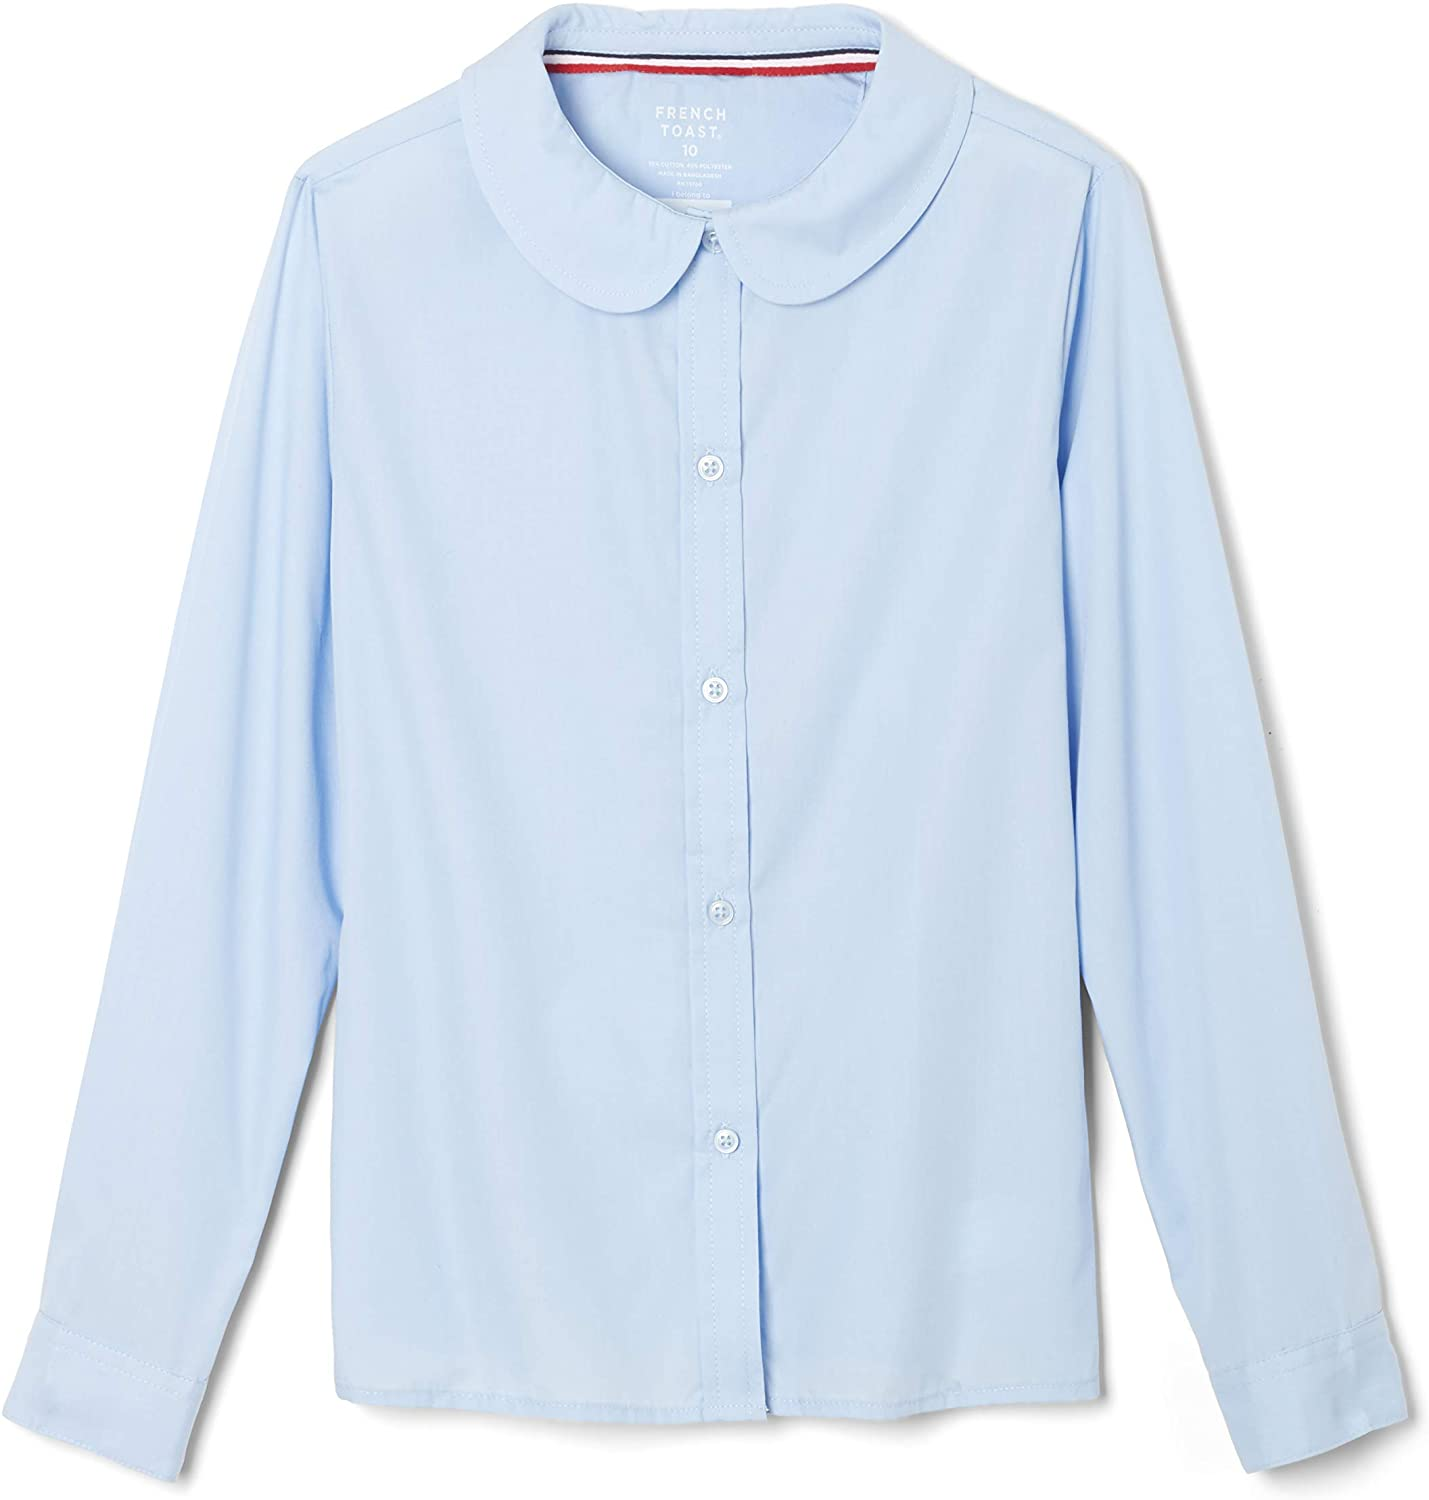 French Toast Girls' Long Sleeve Woven Shirt with Peter Pan Collar (Standard & Plus)